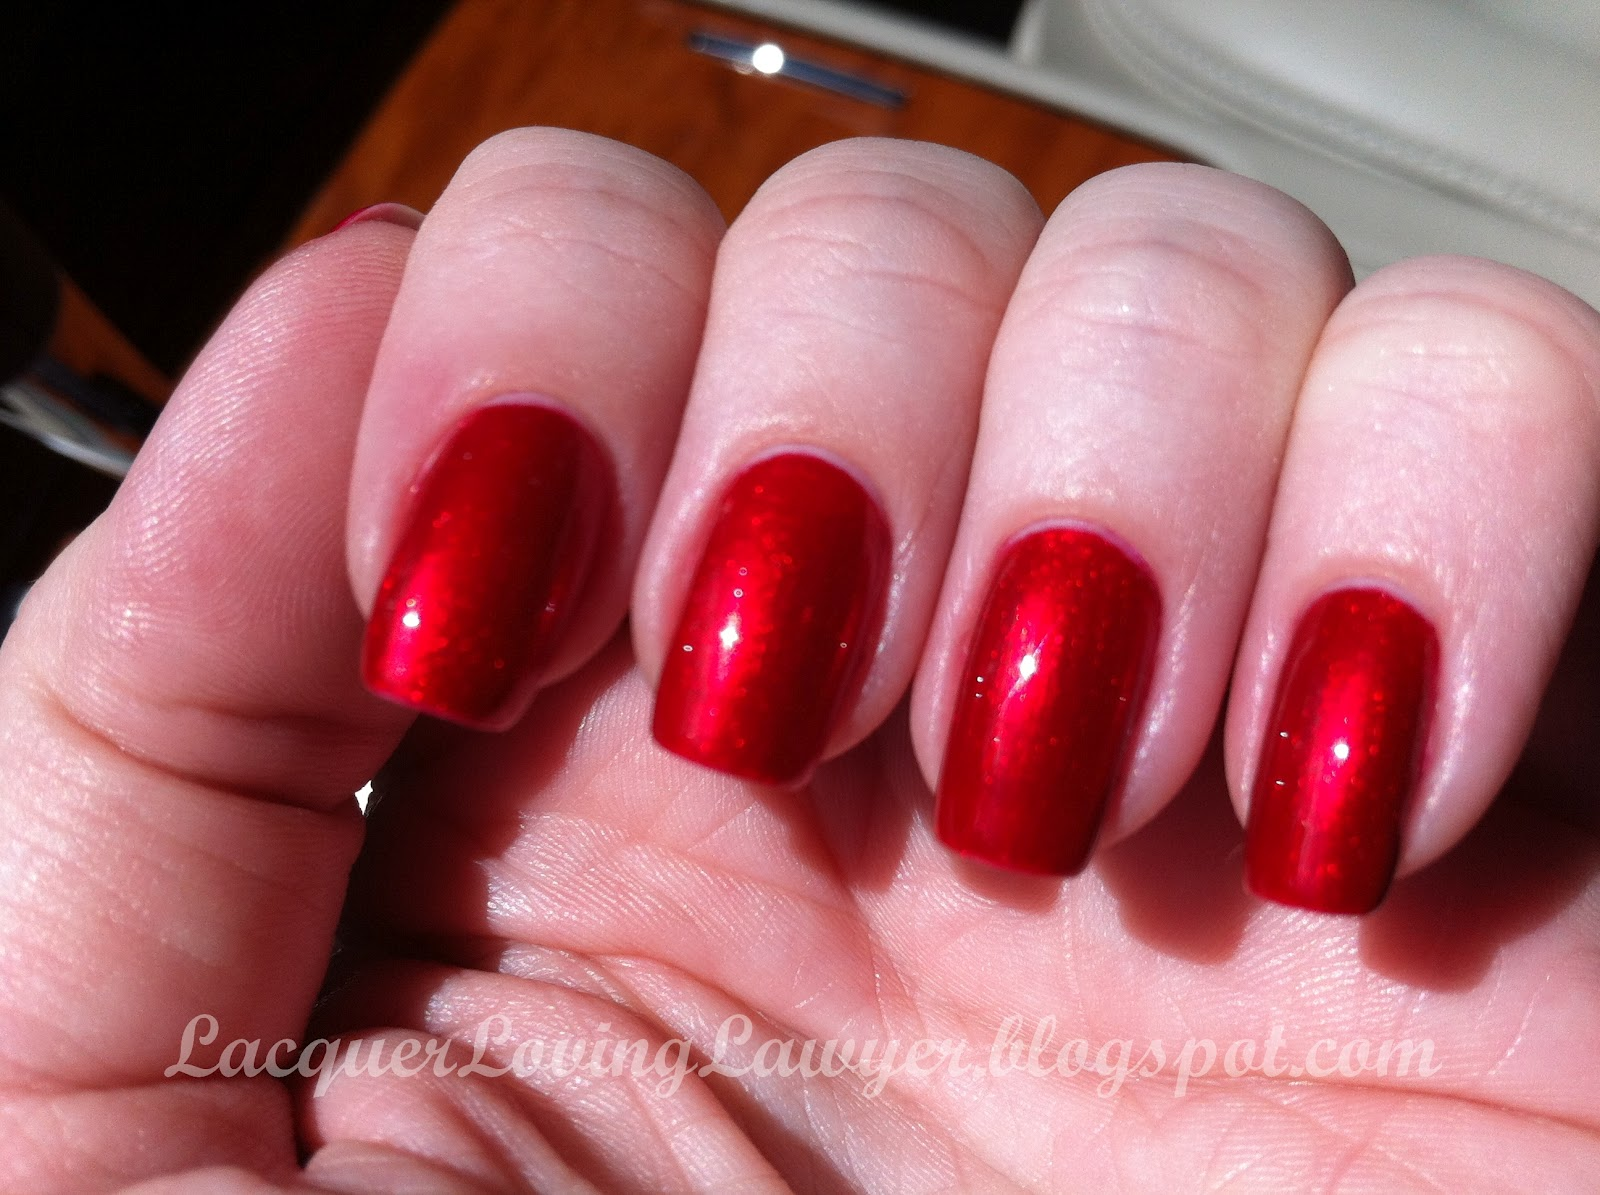 Lacquer-Loving Lawyer: A Nail Polish Blog: OPI Danke-Shiny Red